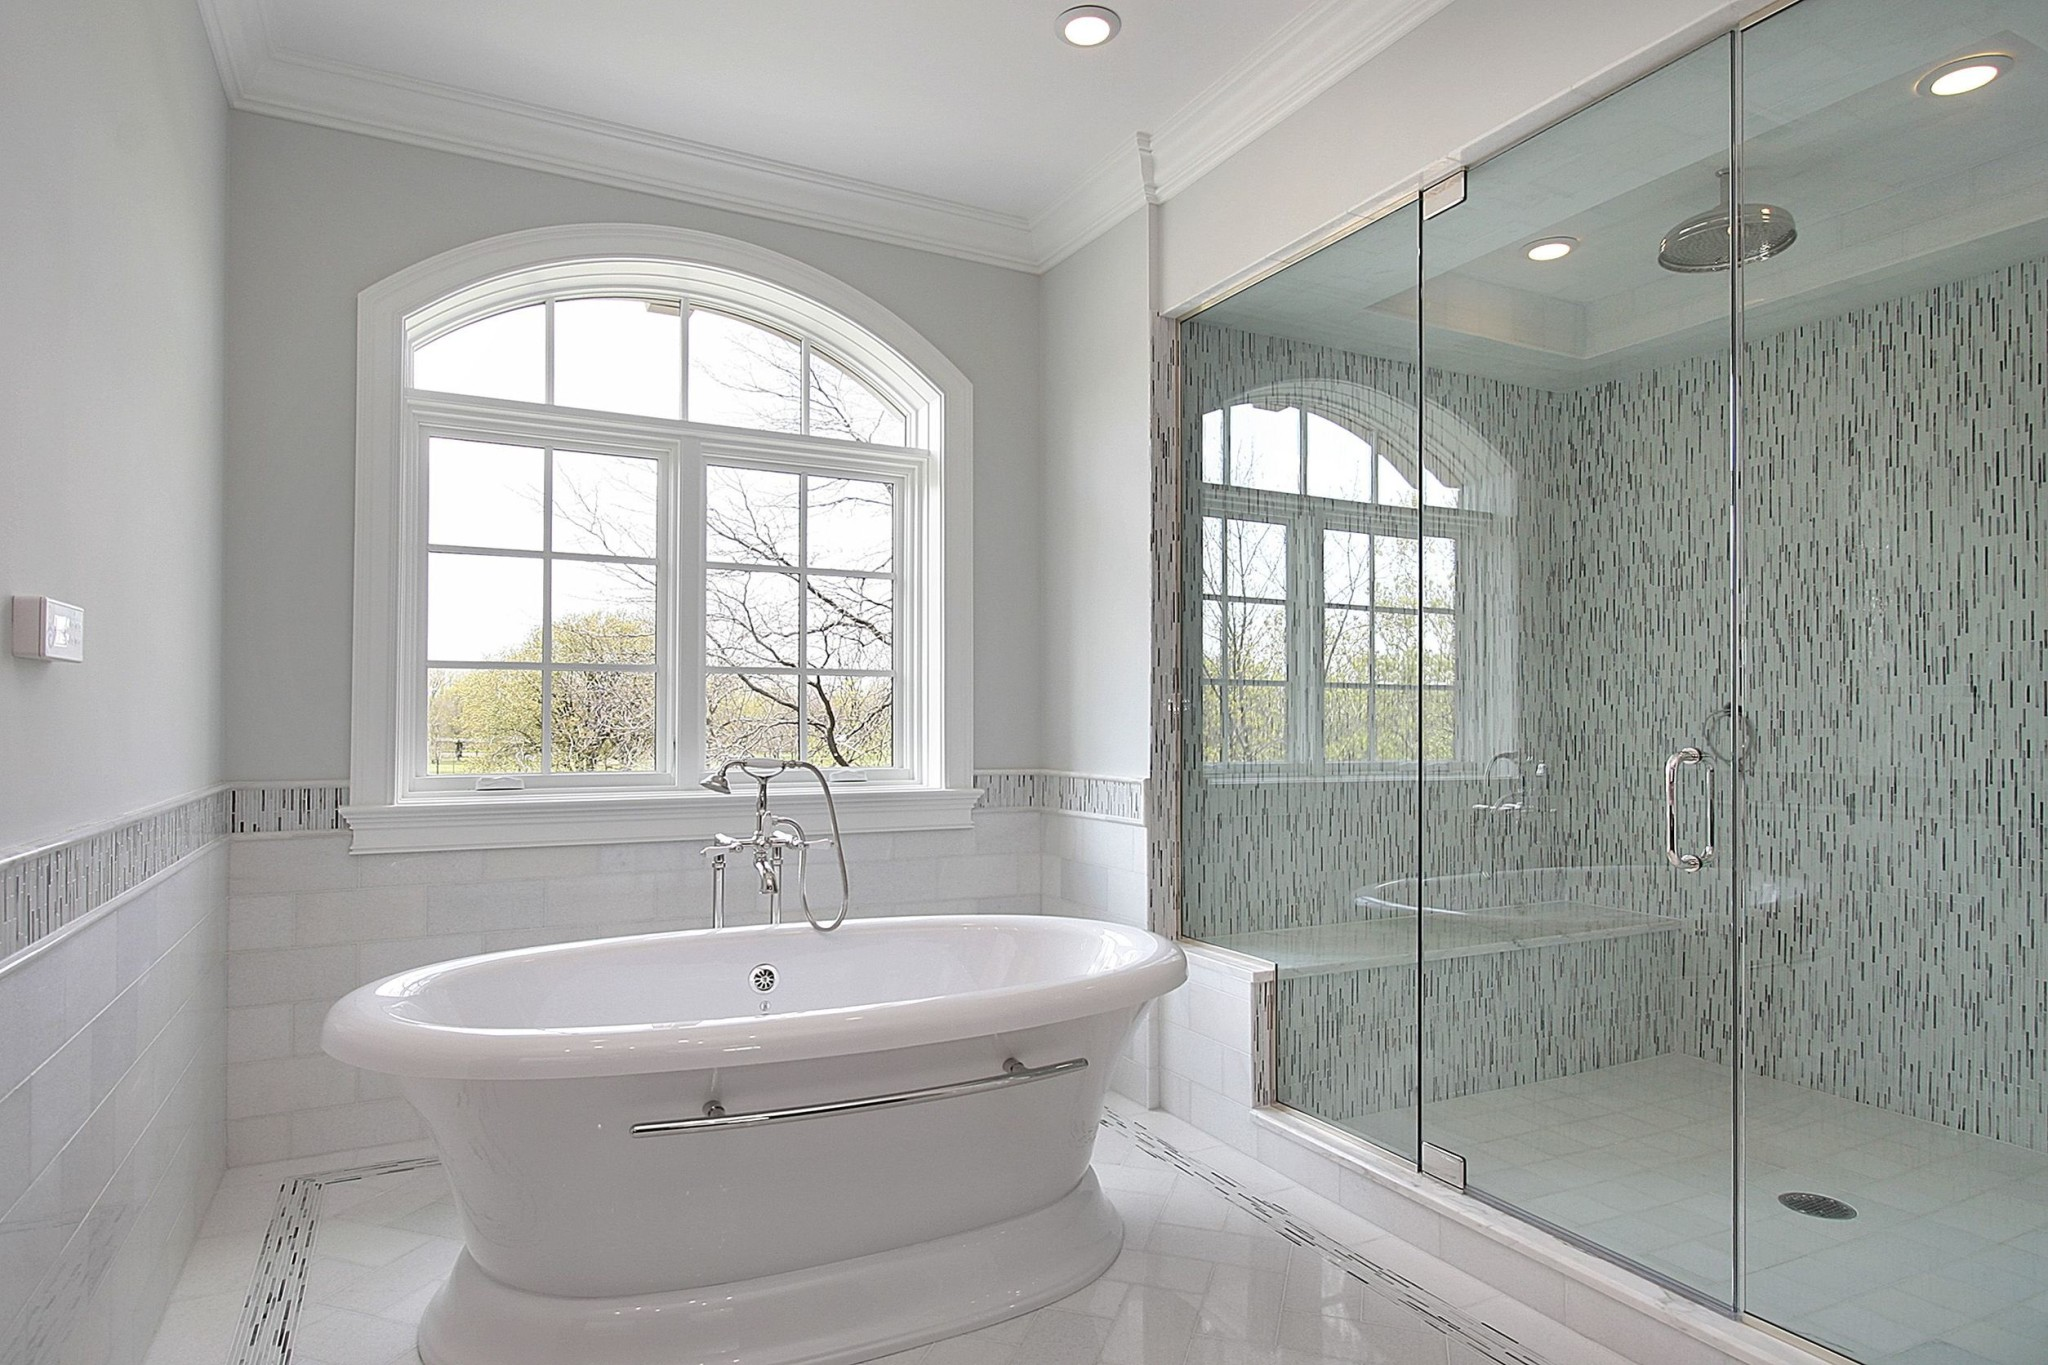 Bathroom Remodeling With Design Jmarvinhandyman - Small bathroom remodel gray and white